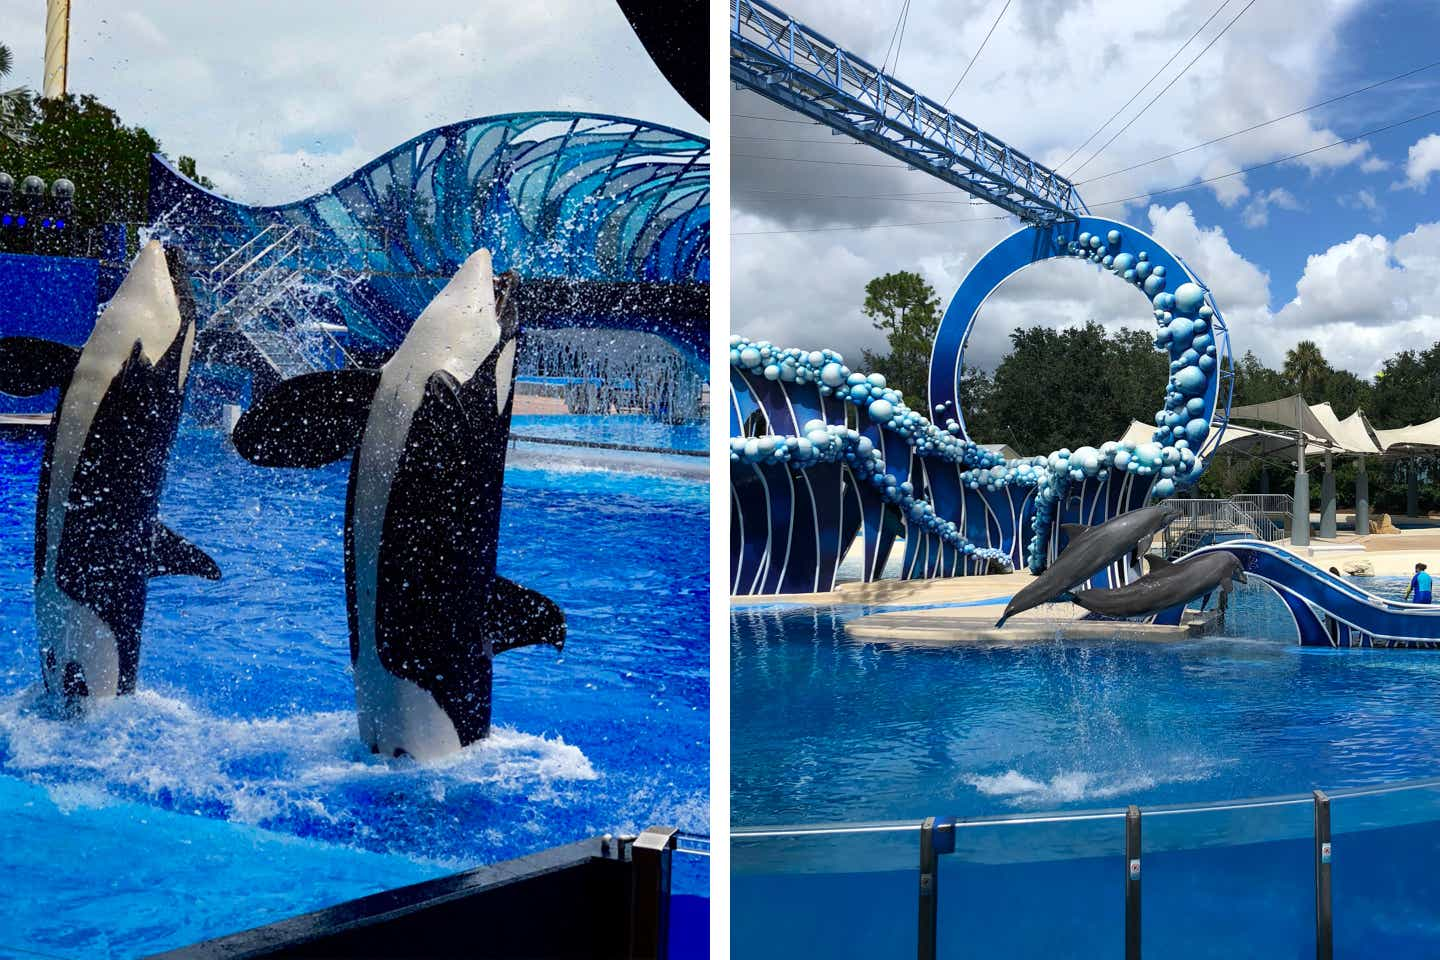 Left: Two orcas emerge from the water in a performance with Trainers. Right: Two dolphins emerge from the water in a performance with Trainers.